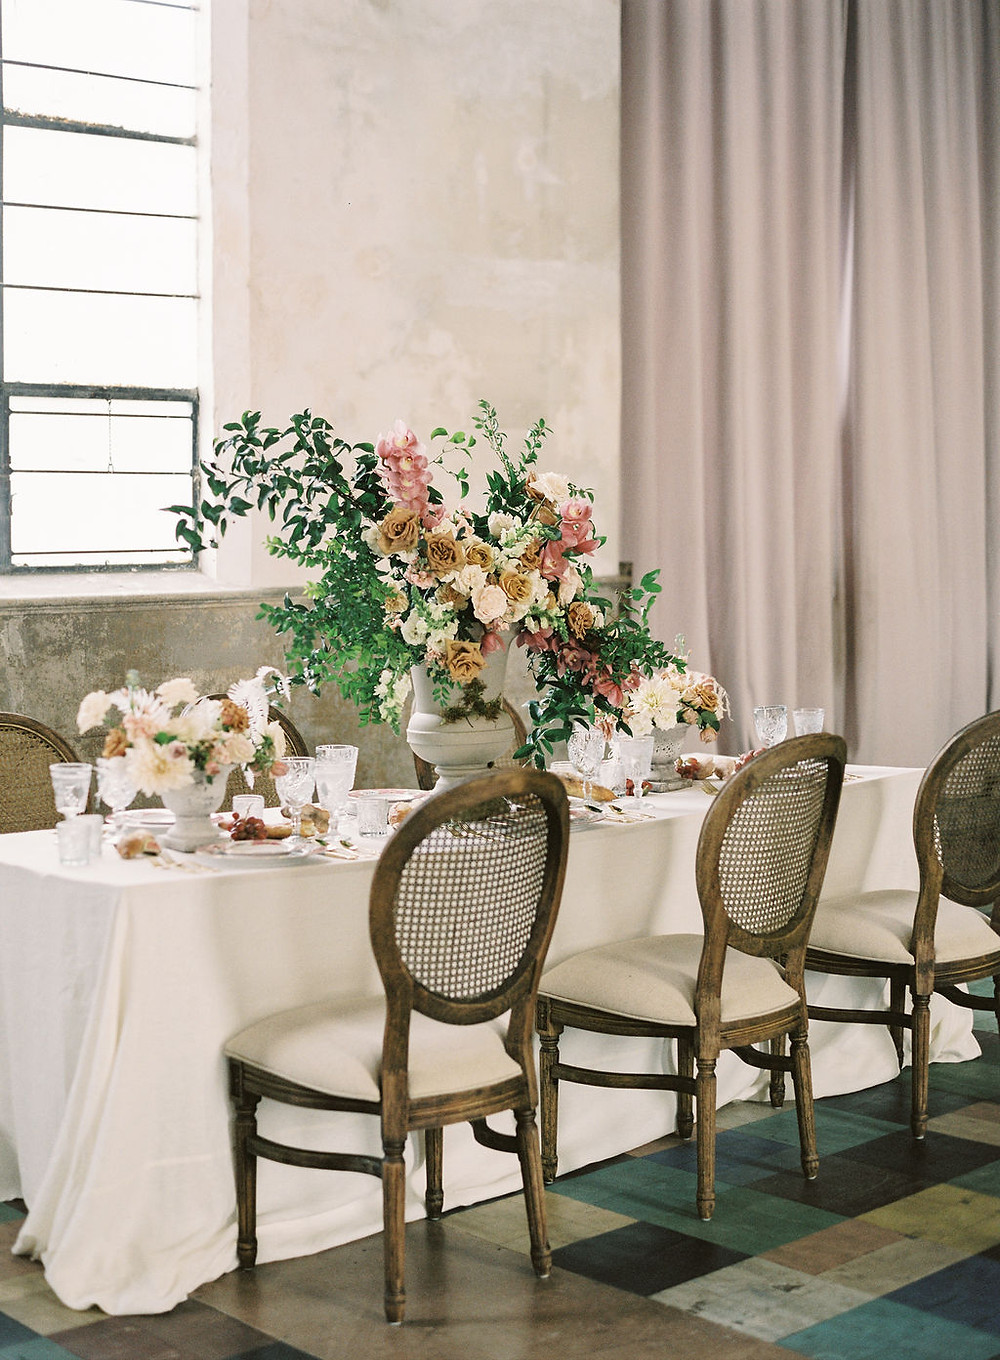 Seated Dinner for Bridgerton Inspired Wedding at the Marigny Opera House in New Orleans with Decor, Lounge Spaces, and Vintage Furniture by Lovegood Rentals Featuring Caned Louis Chairs, Linen Tables and Overgrown Florals